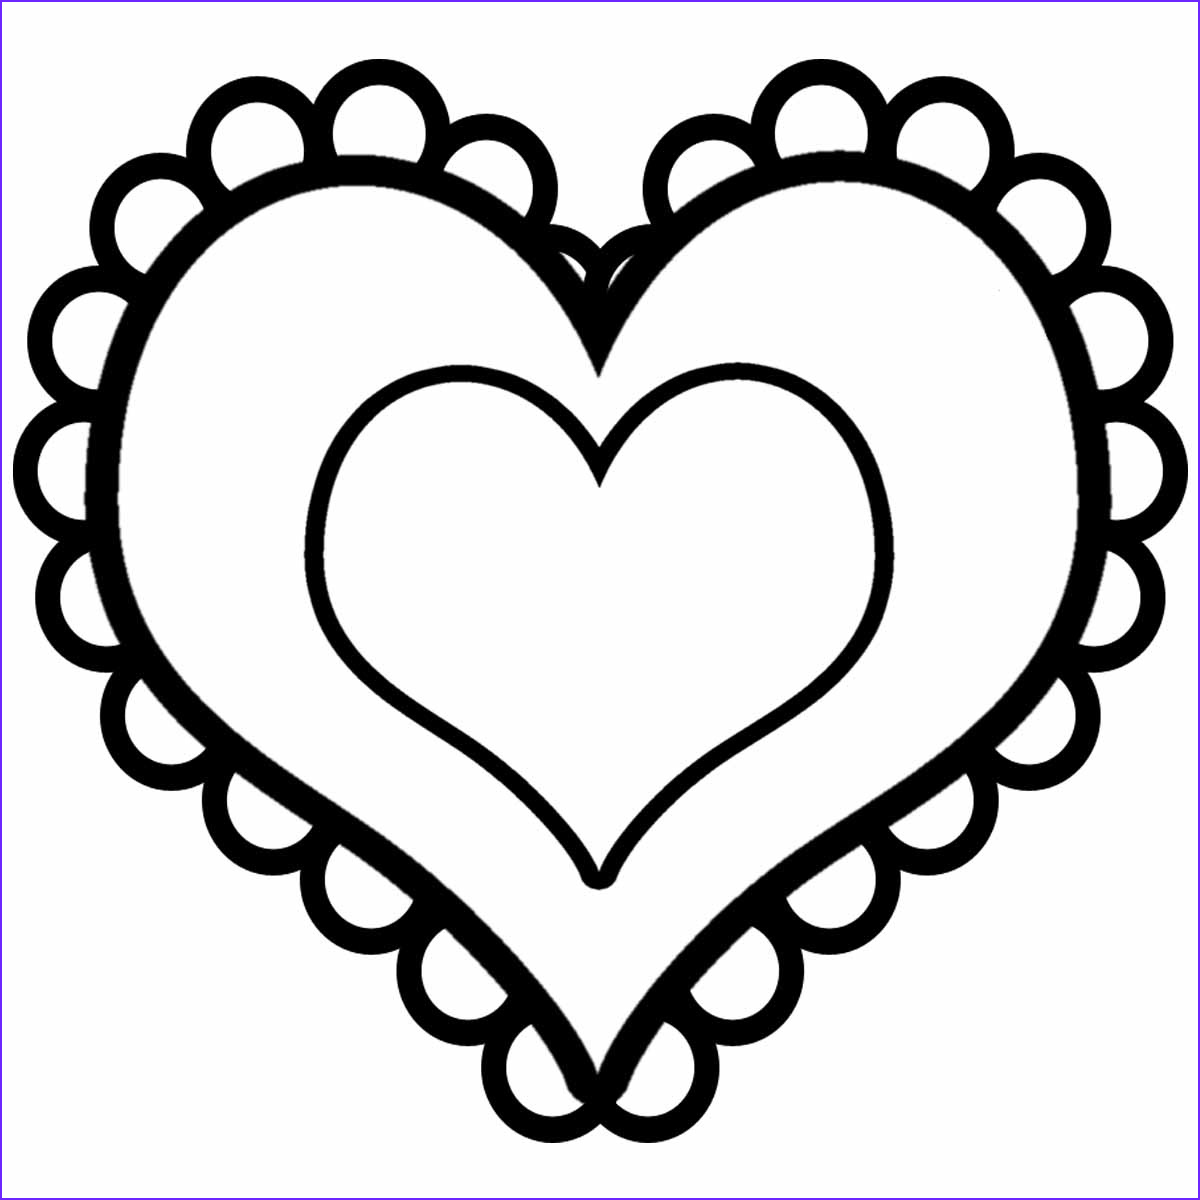 Heart Coloring Books Inspirational Collection Free Printable Heart Coloring Pages for Kids